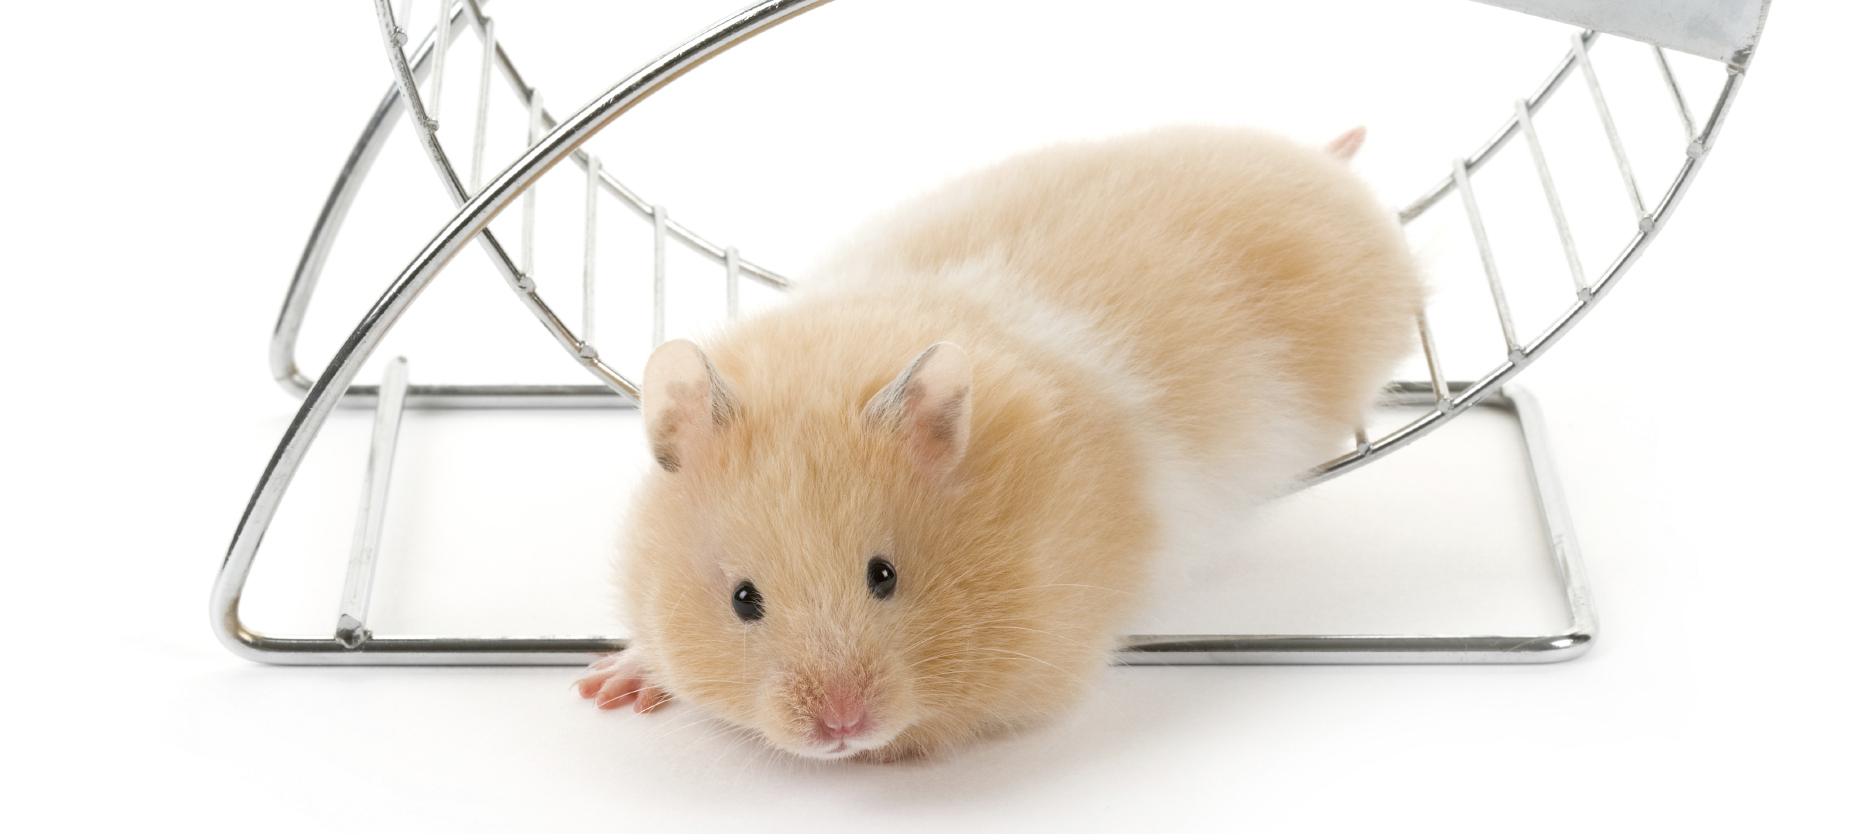 Don't trip over the hamster wheel on the way out